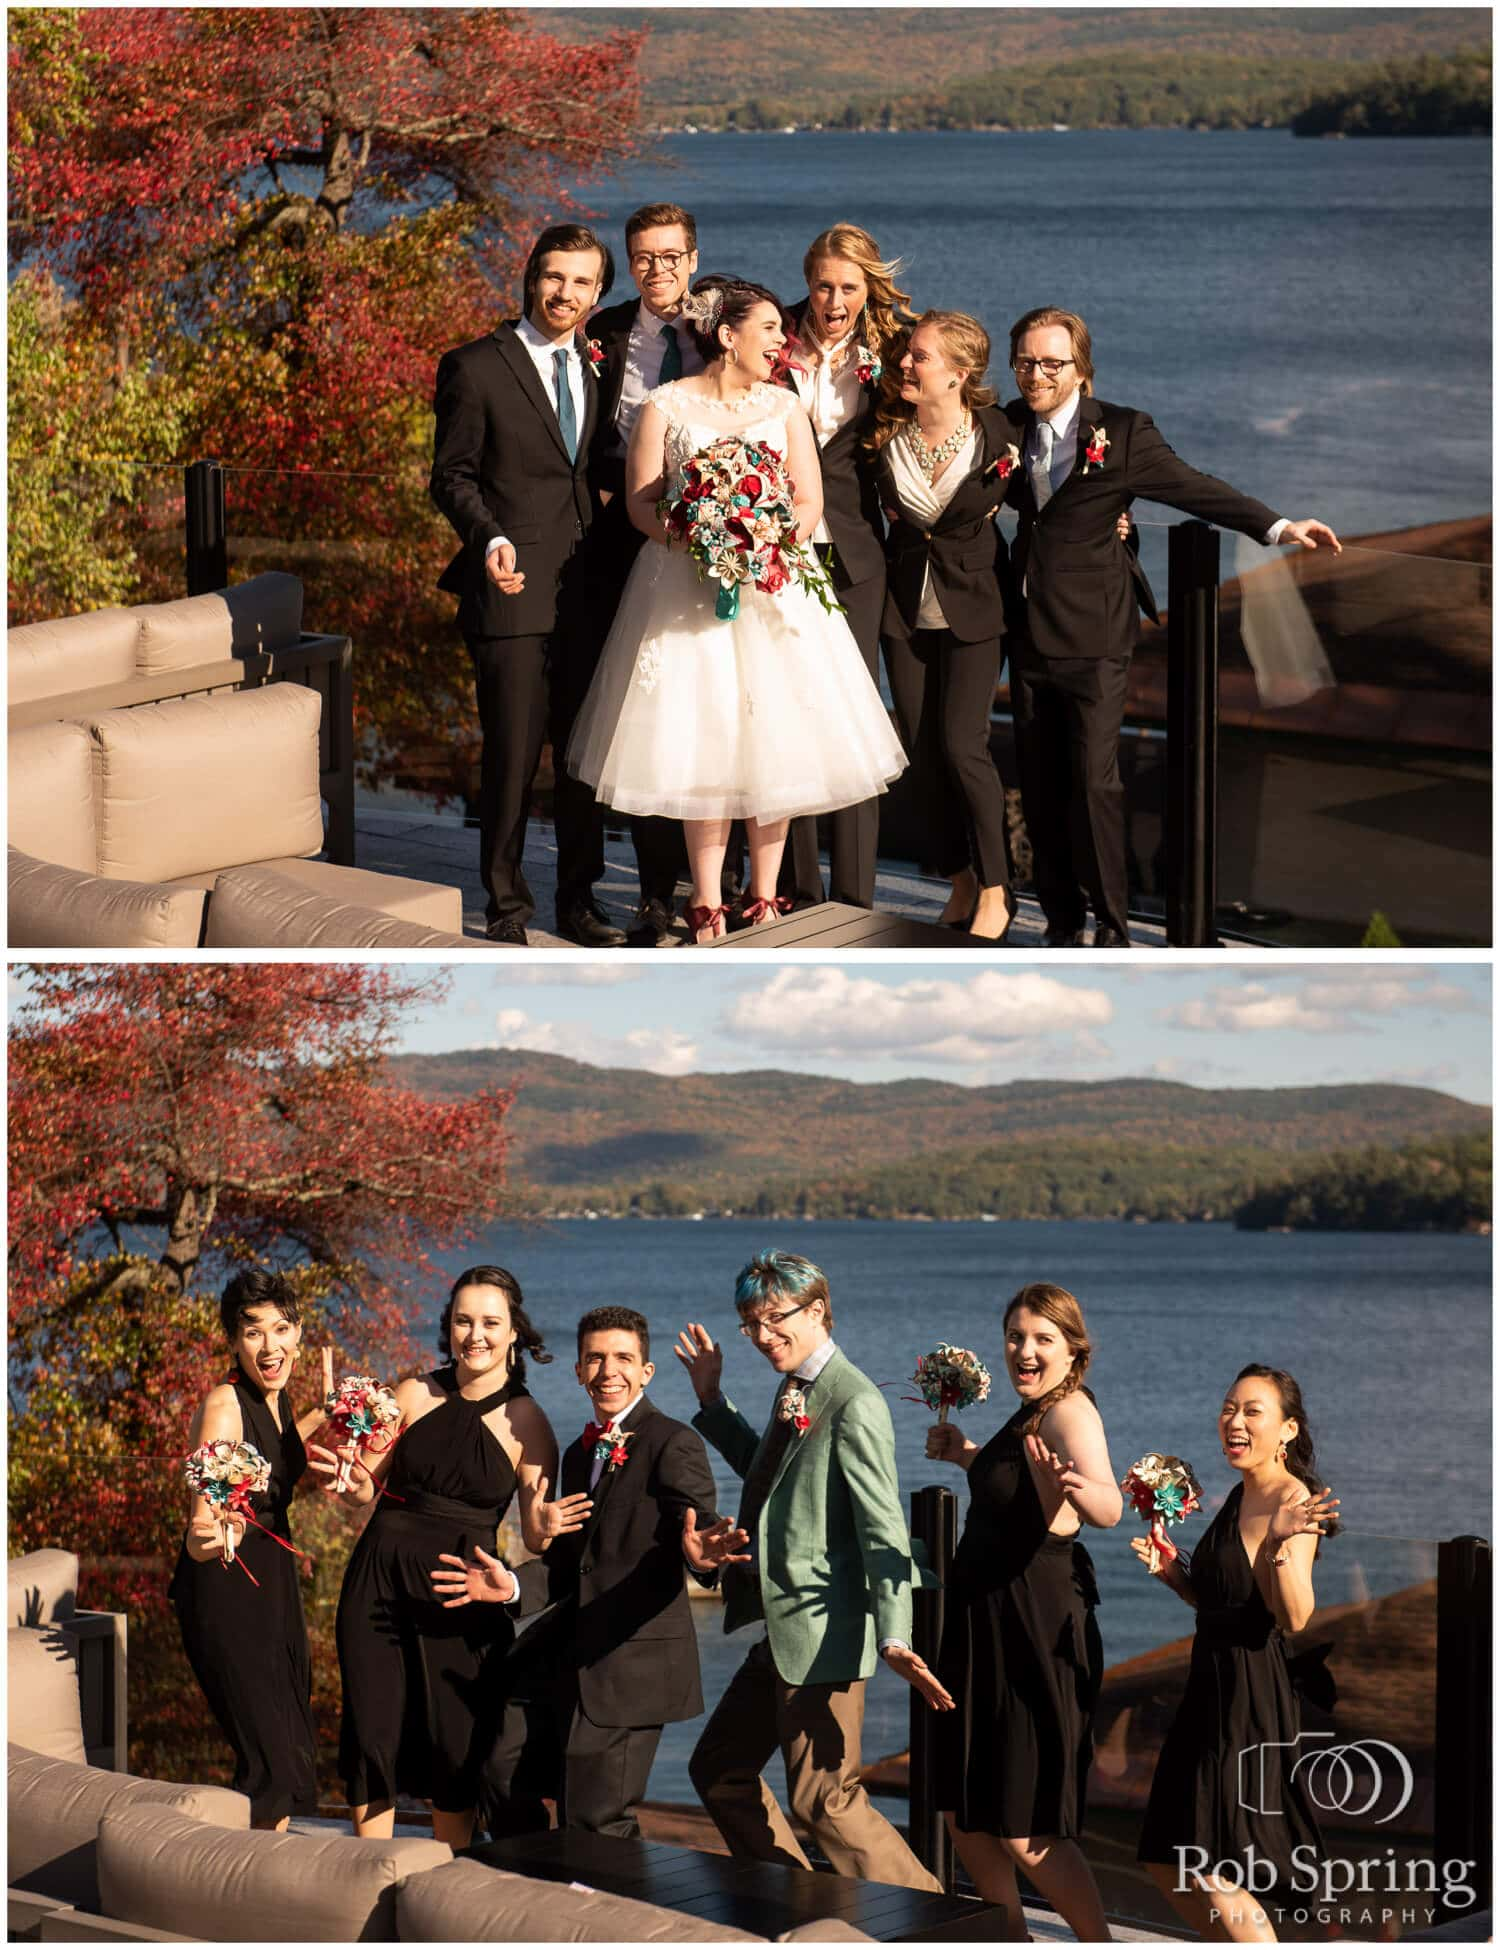 Cascading Comic Book Wedding Package- Your choice of comic & accent colors